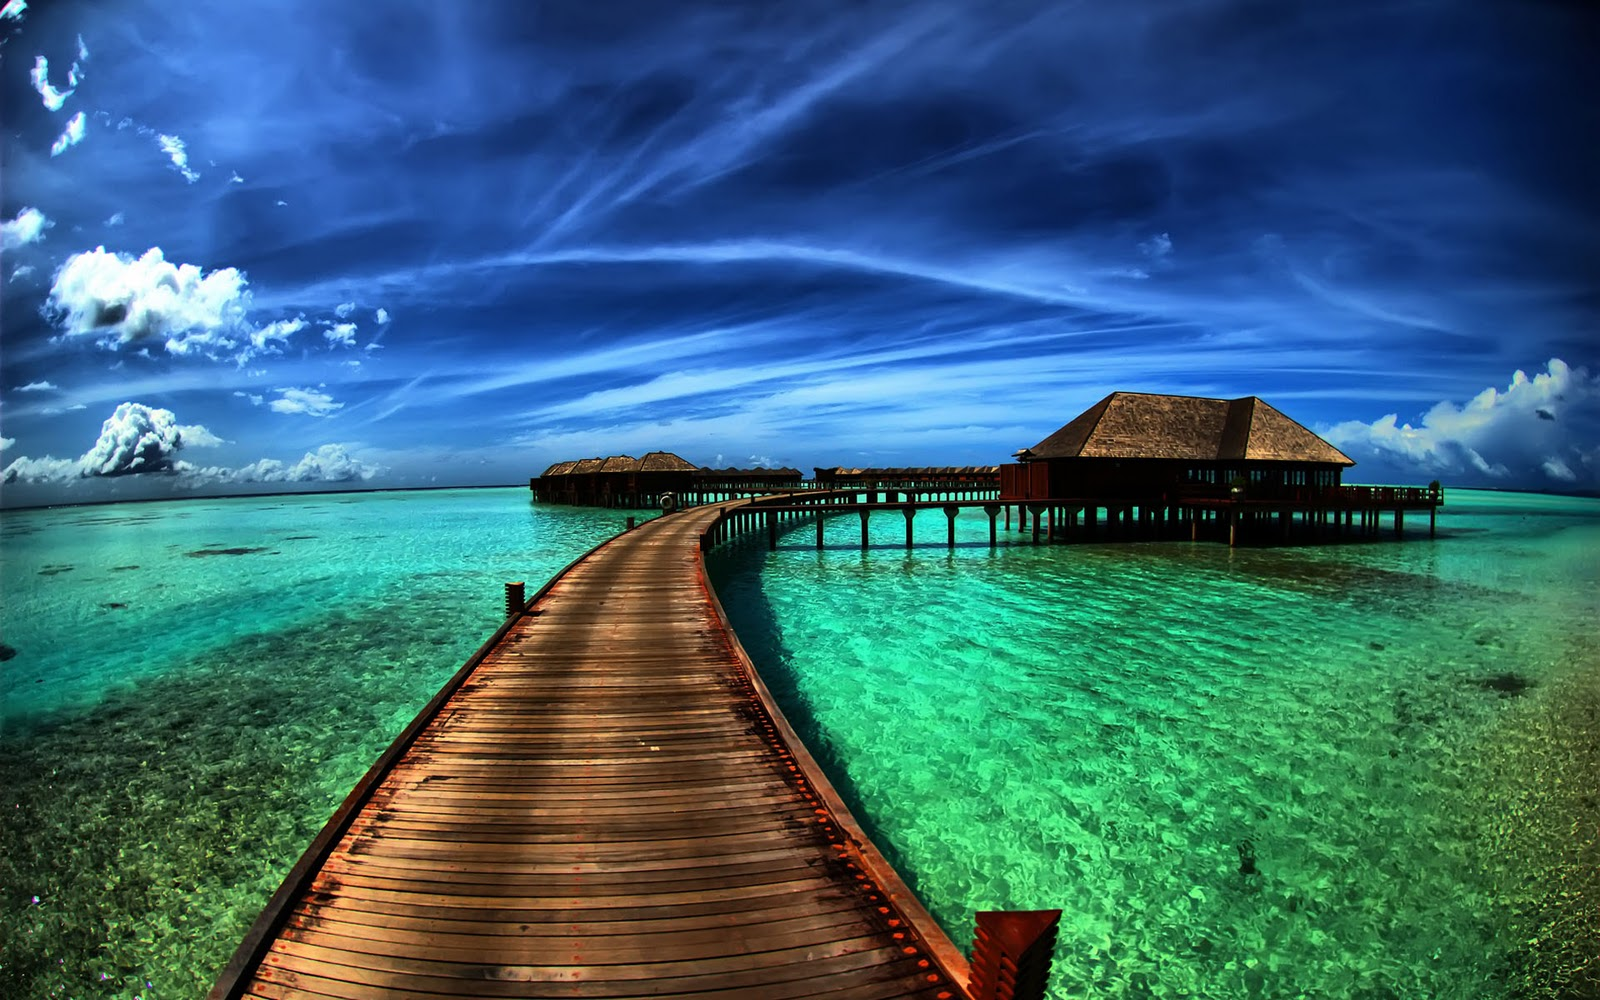 Hd Tropical Island Beach Paradise Wallpapers And Backgrounds: IRBOB SEVENFOLD: Paradise Wallpaper Desktop